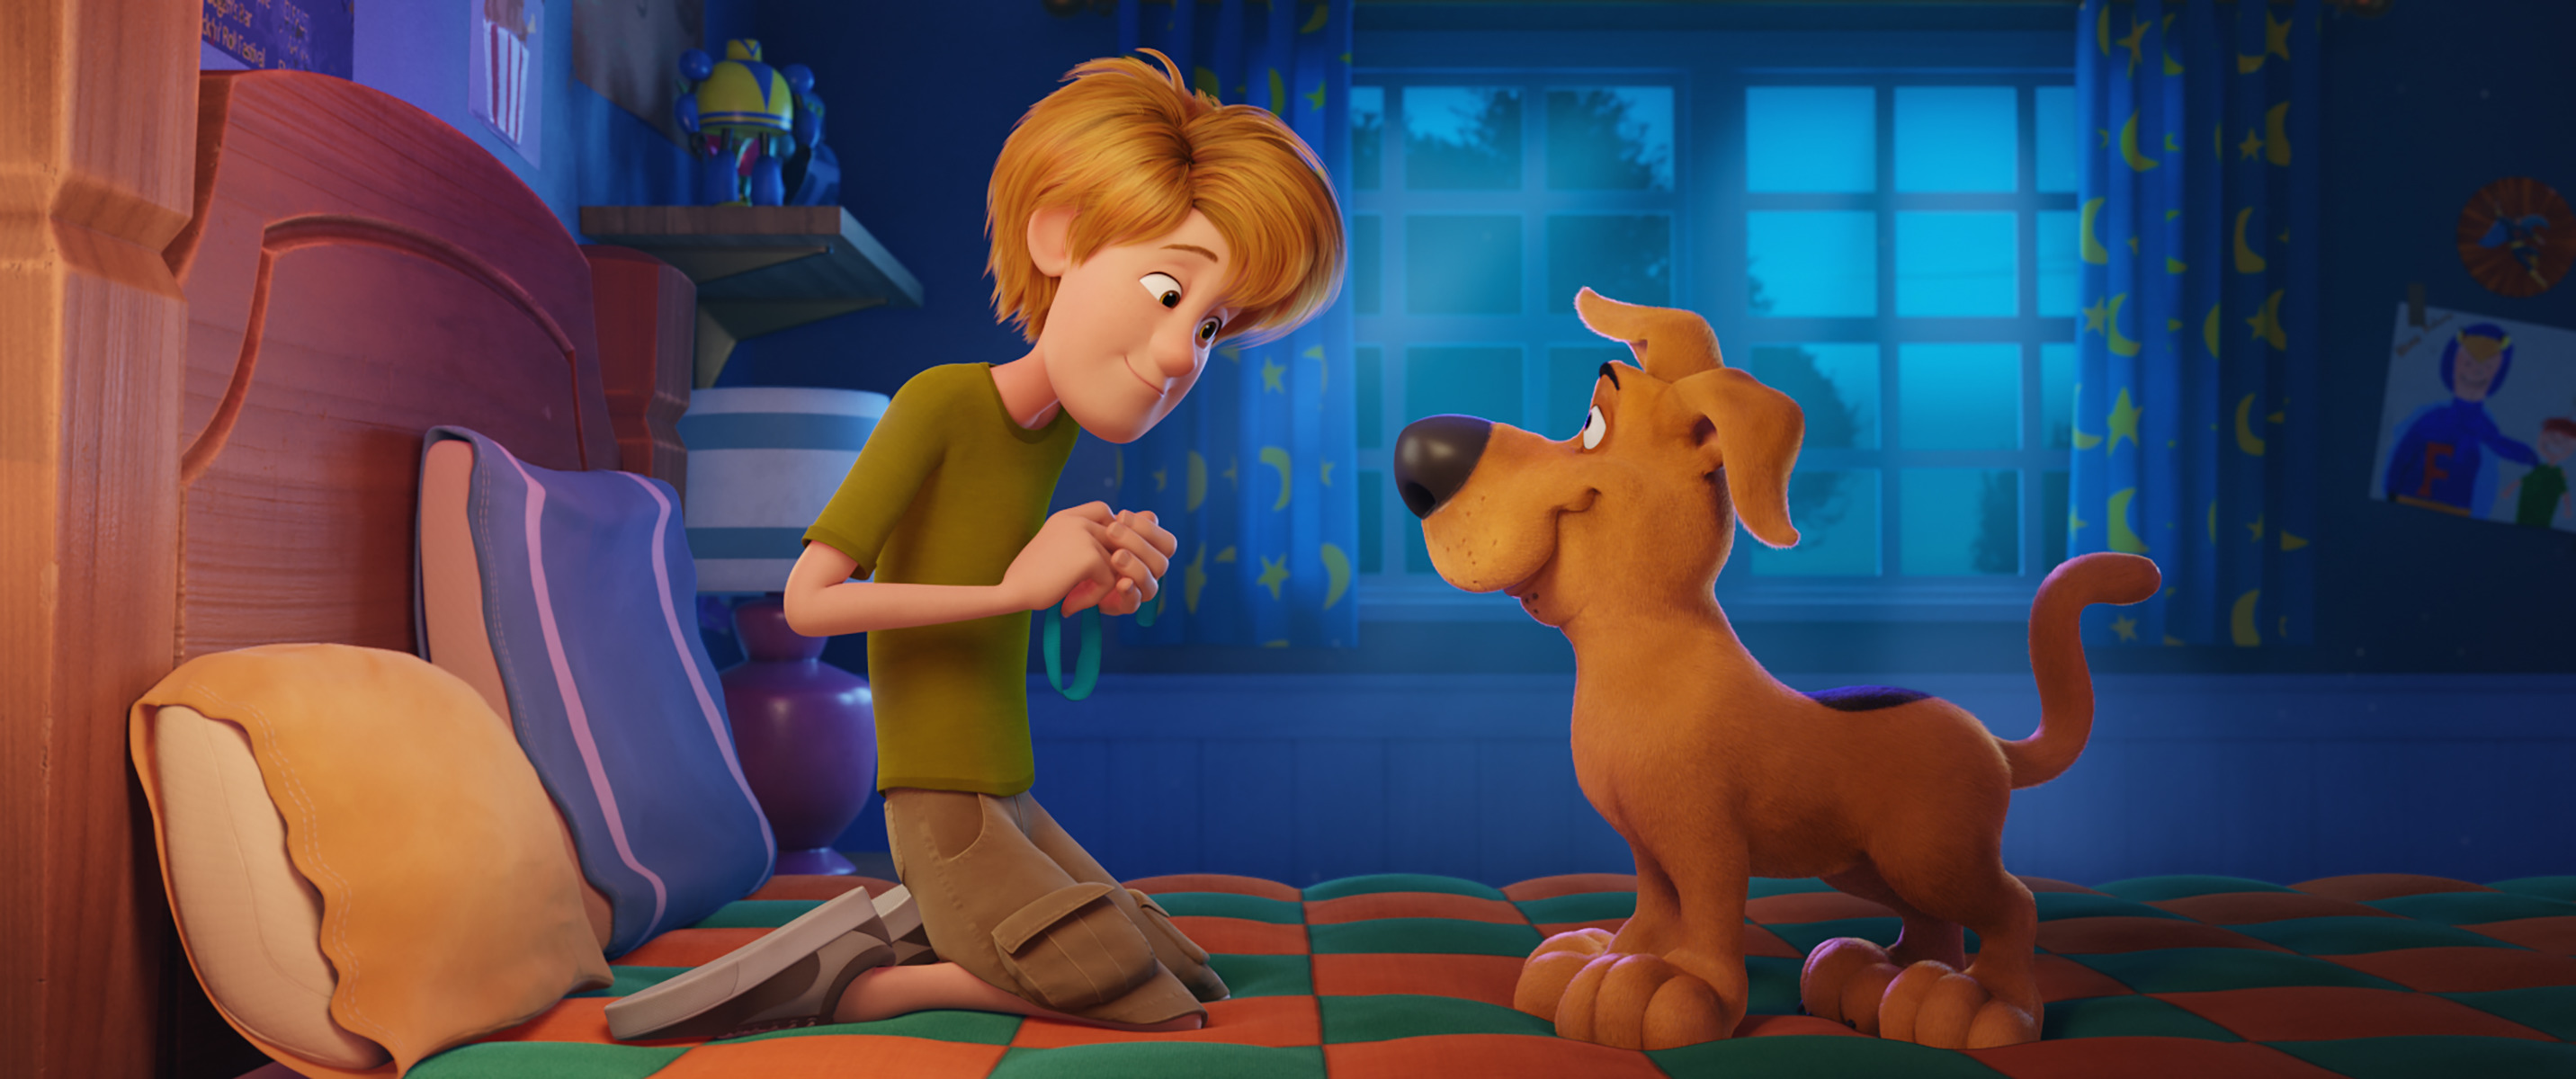 Scoob! Image of Young Shaggy, voiced by Iain Armitage